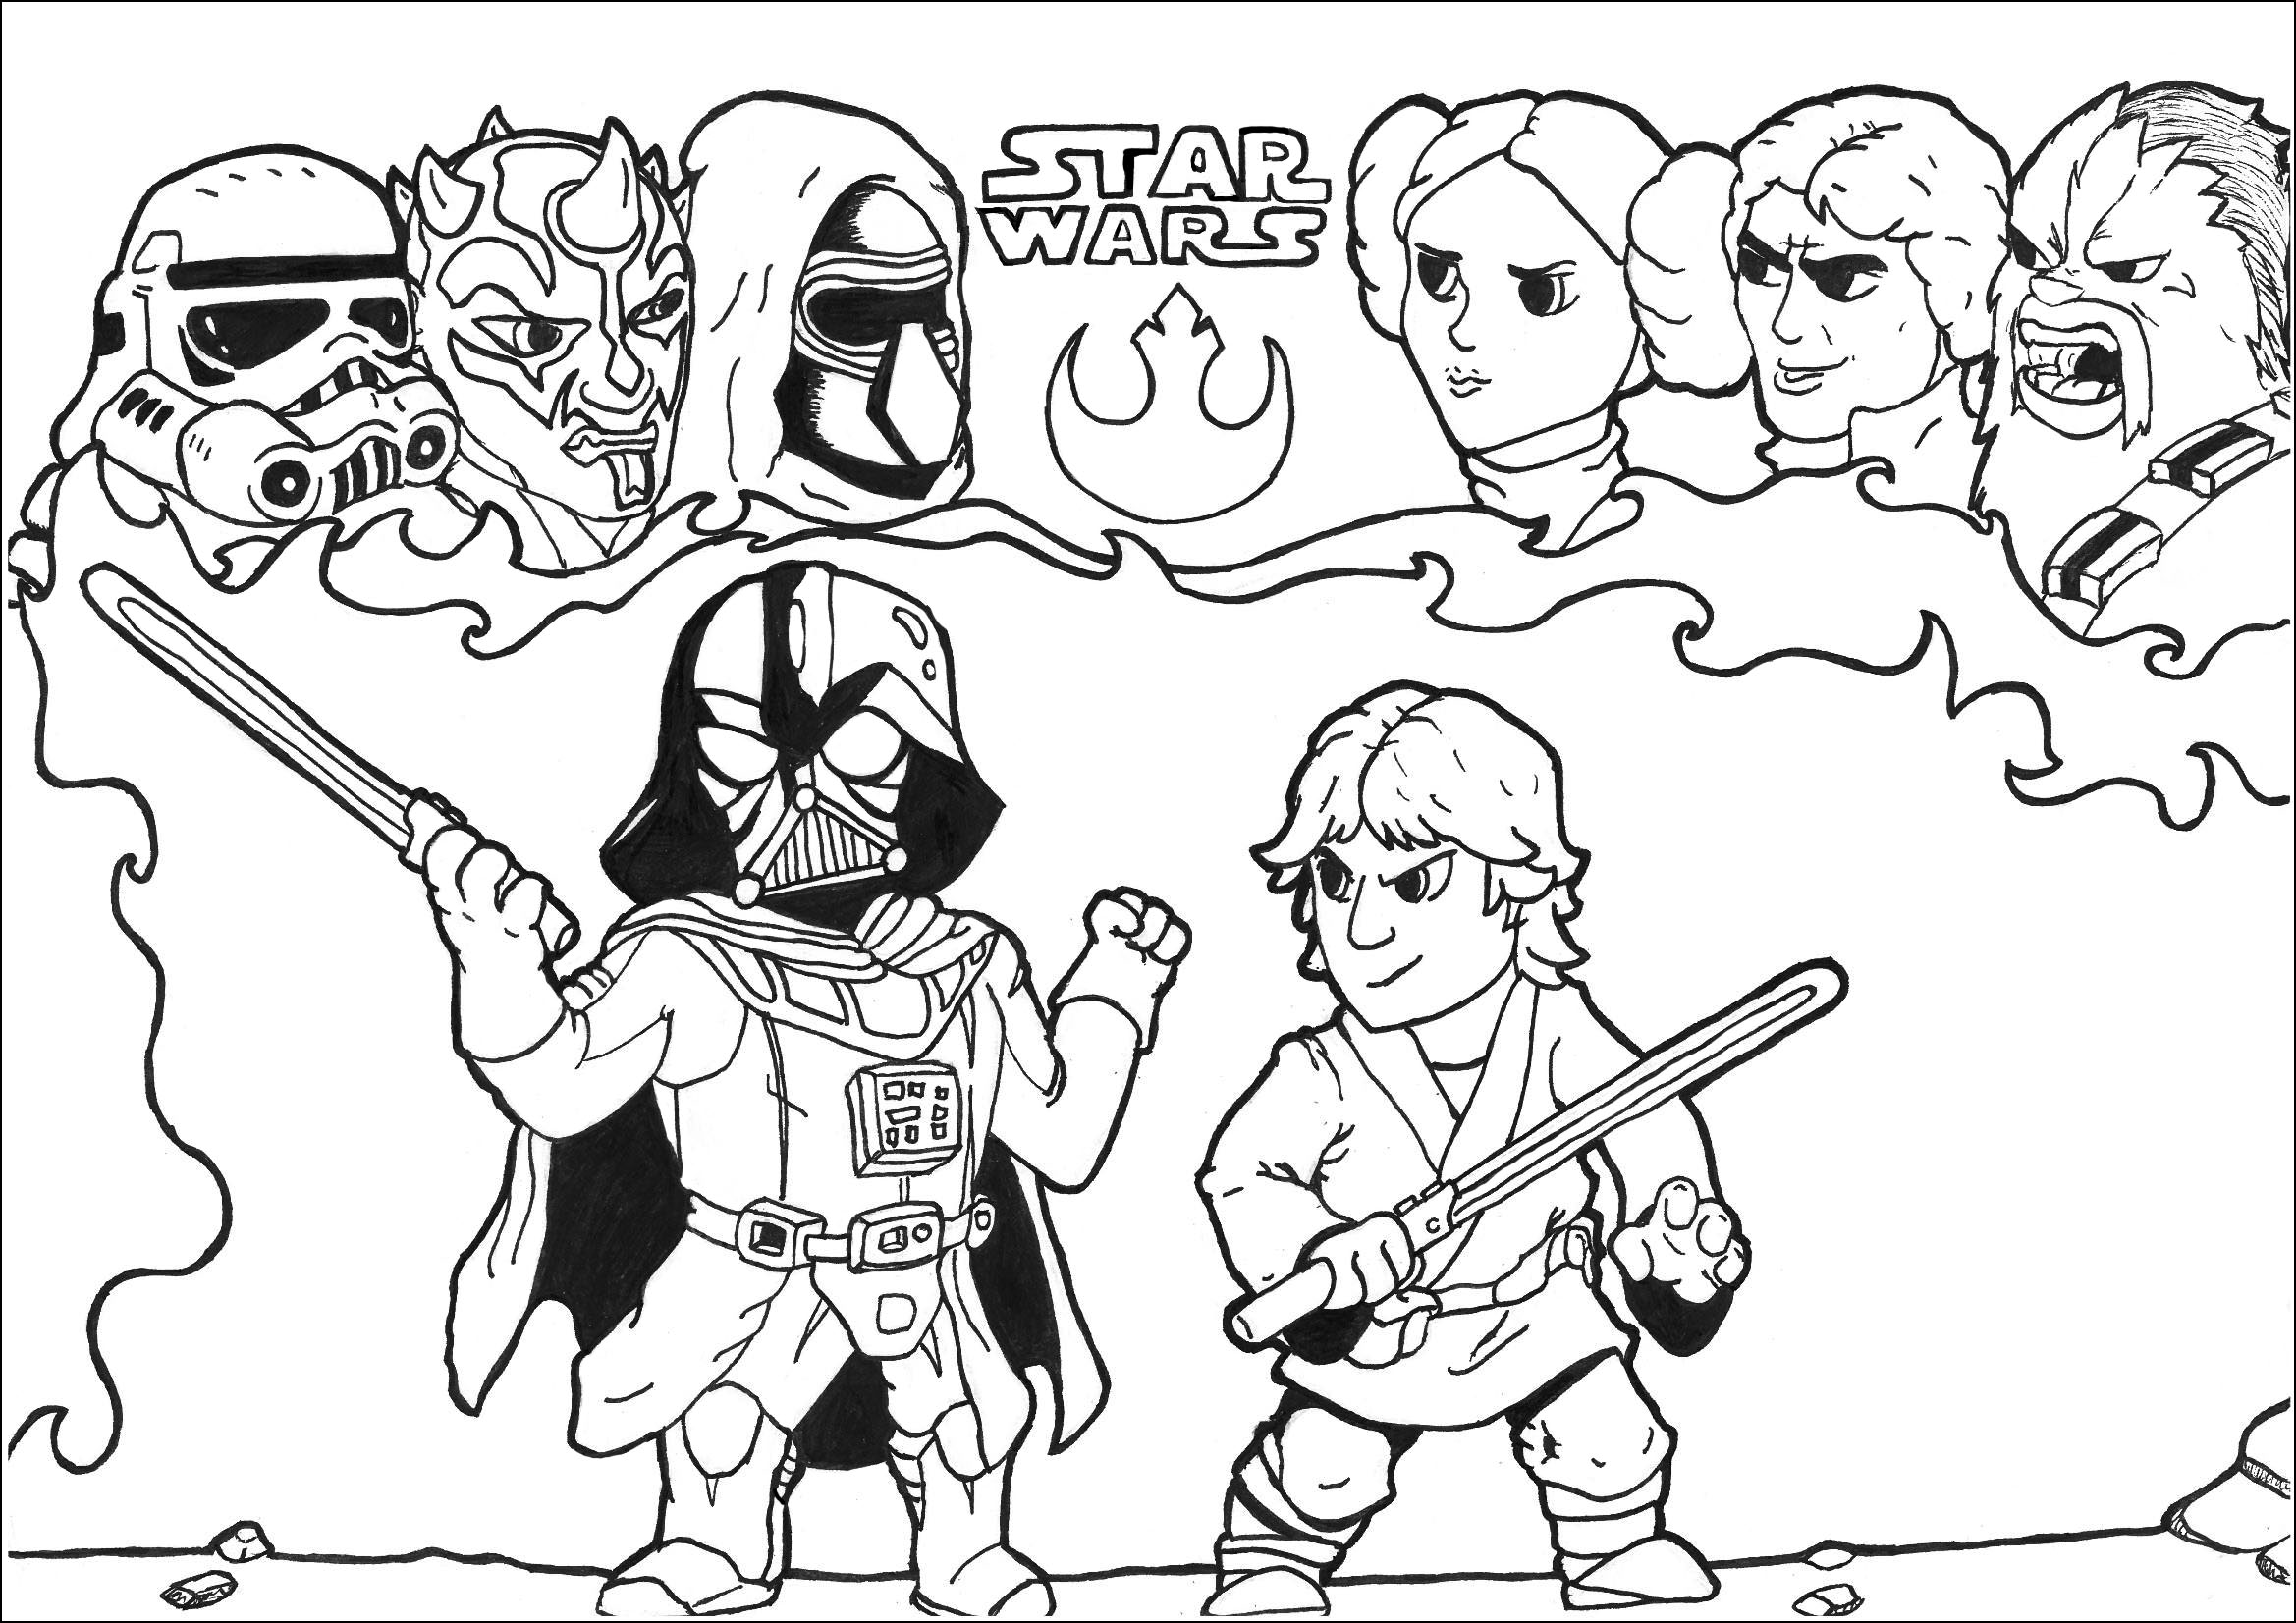 Coloring Page inspired by the cult movie : Star Wars featuring a fight between Luke Skywalker and Darth Vader In the background, the friends of the fighter appears in their thoughts